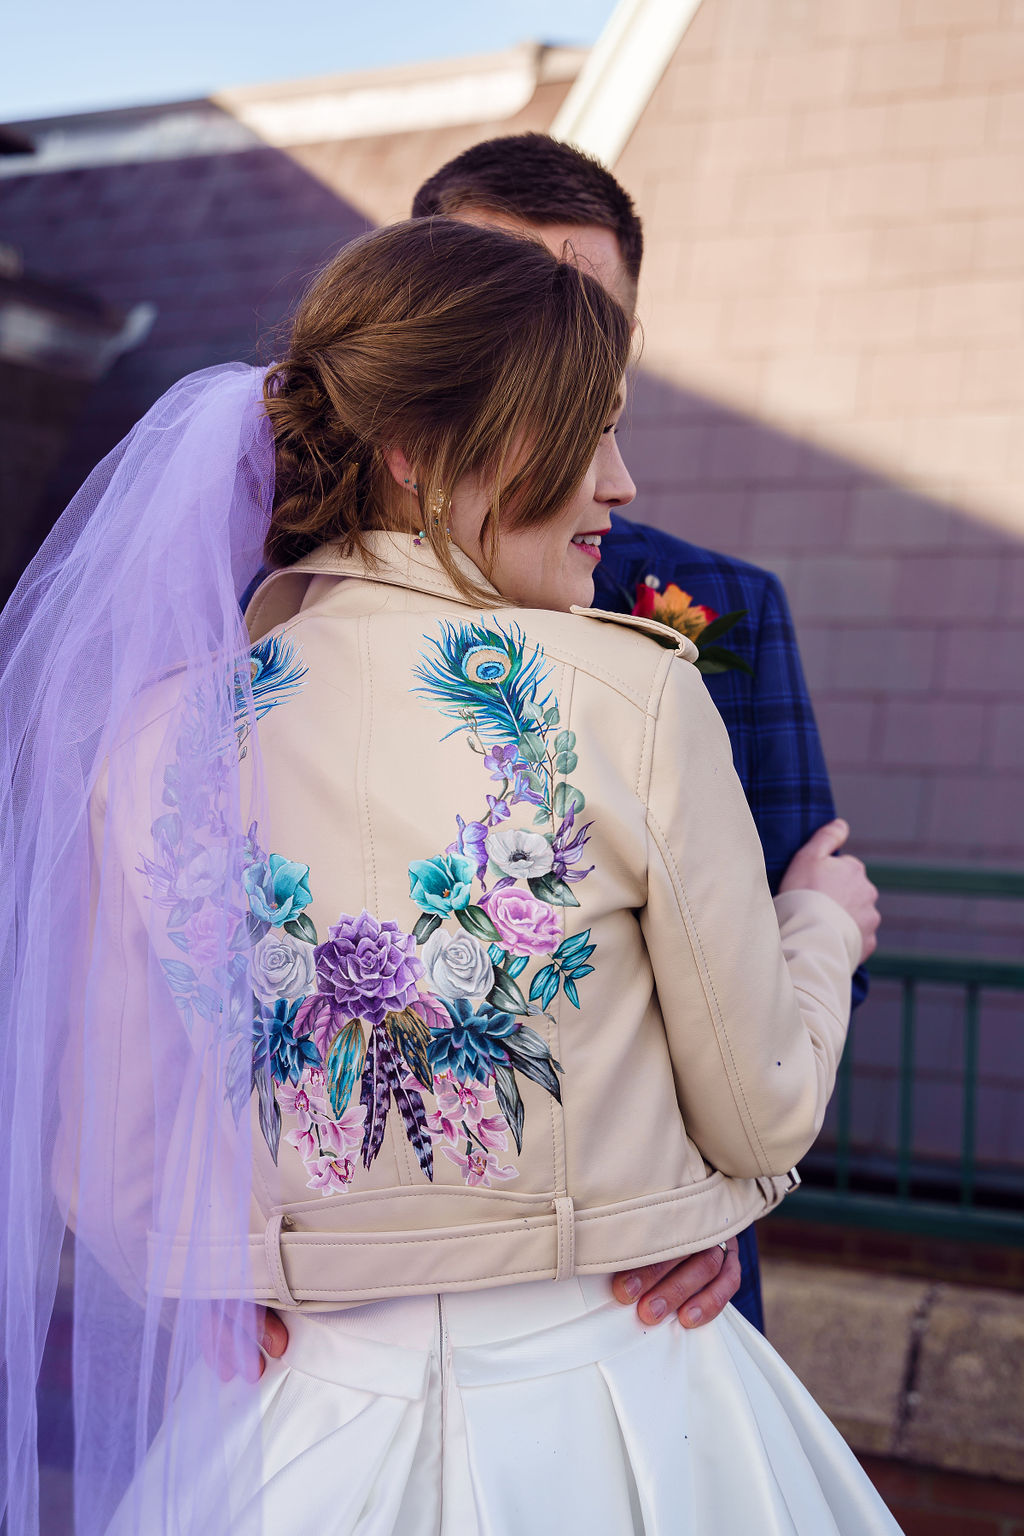 peacock themed wedding - peacock wedding - unique wedding colour scheme - quirky wedding - luxurious wedding - hand painted leather jacket - hand painted wedding jacket - purple veil- purple wedding veil- coloured wedding veil - unique wedding veil - alternative bridalwear